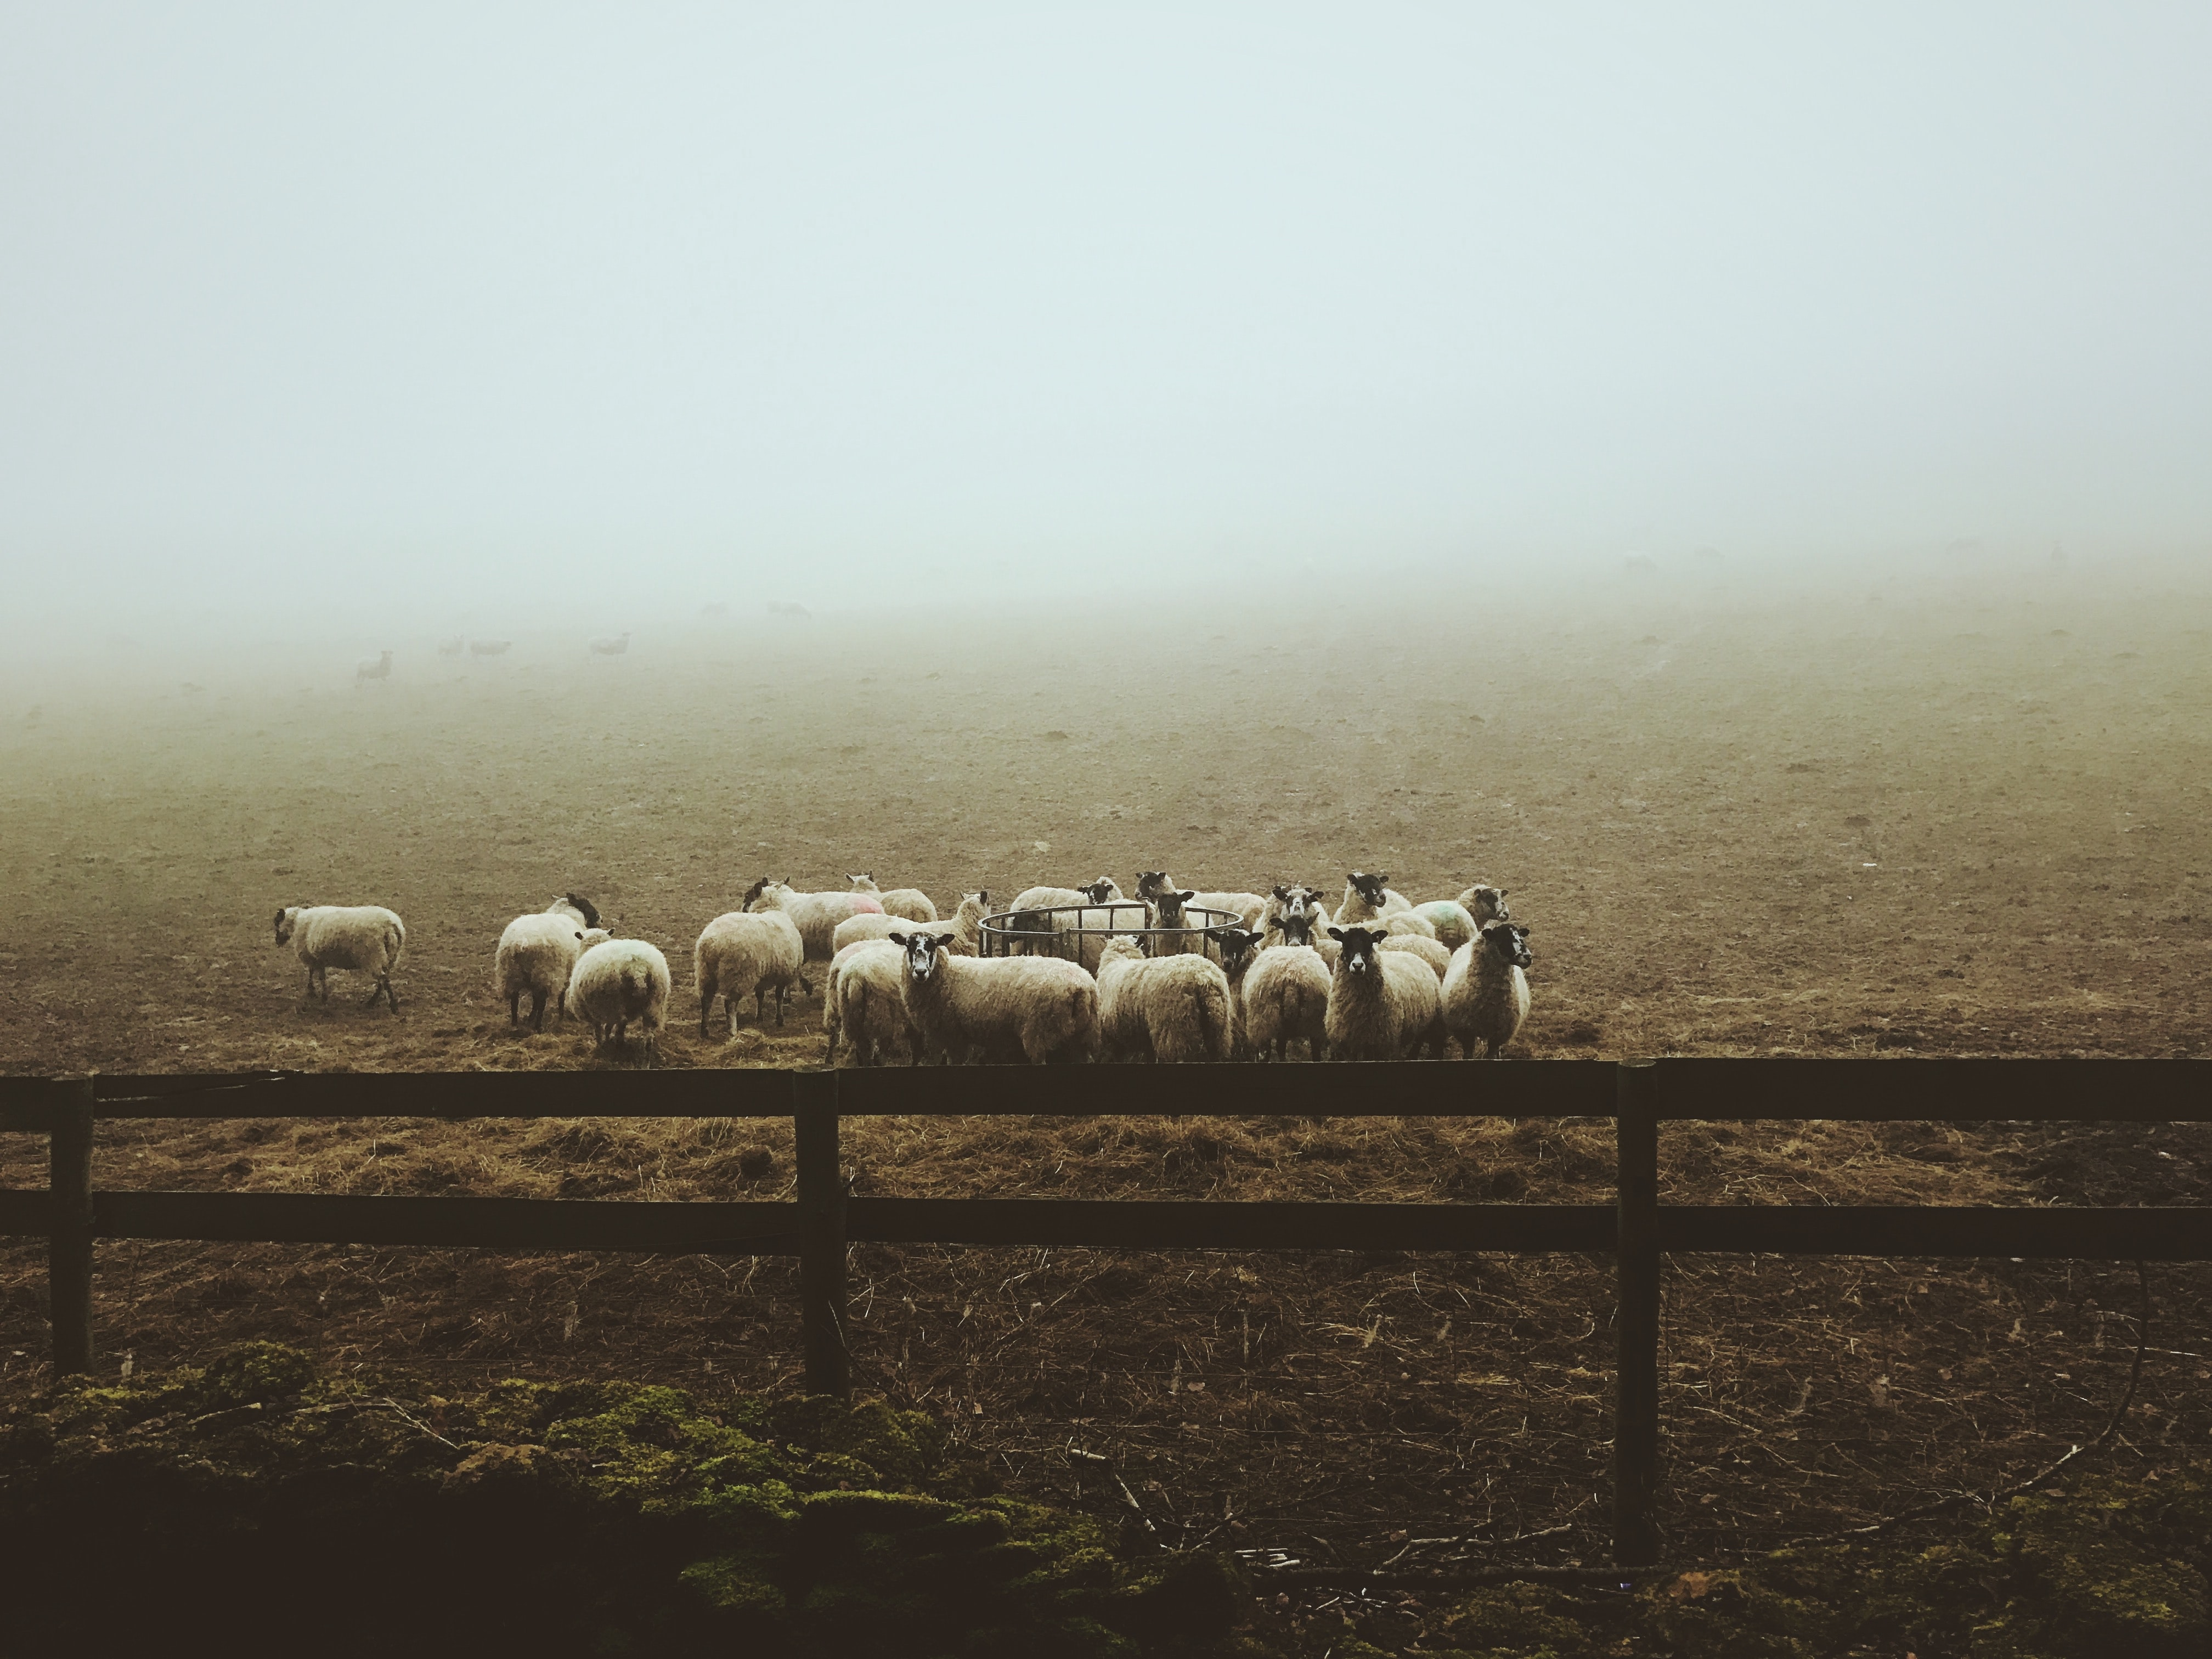 landscape photography of group of sheep on field